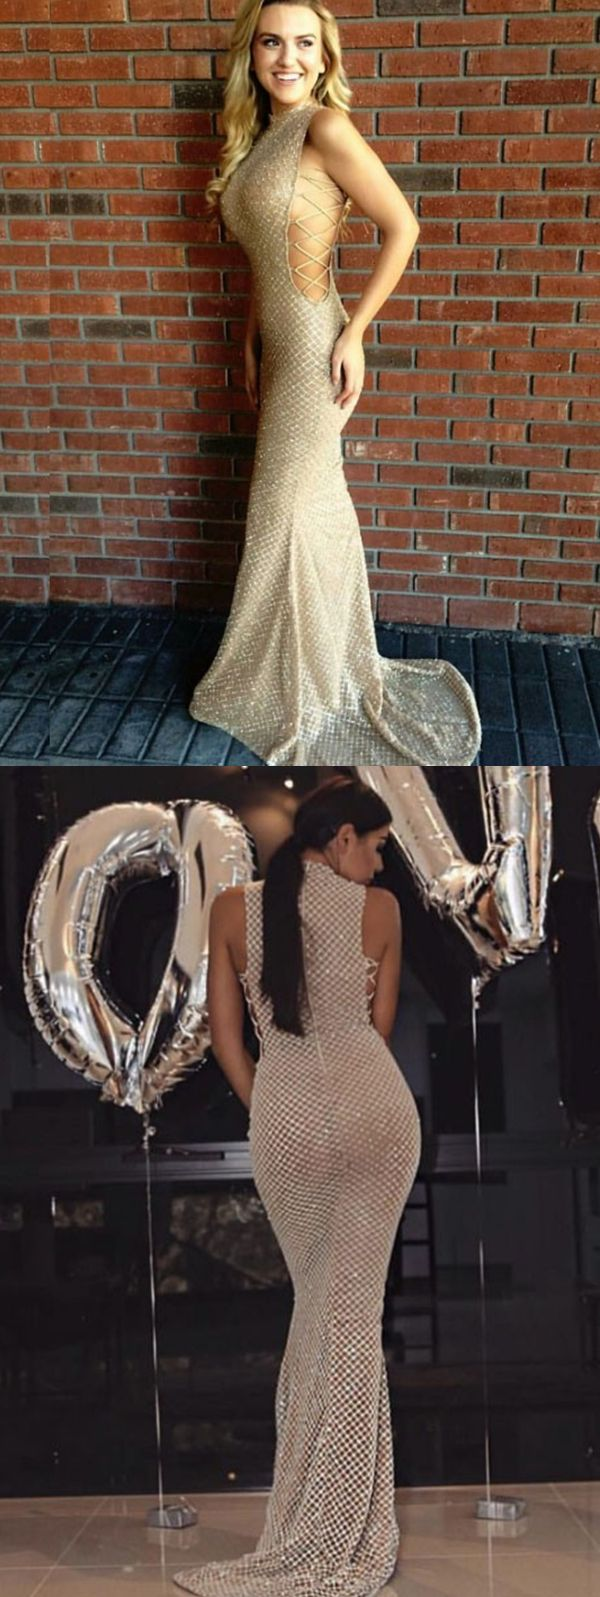 modest light gold mermaid prom dresses, elegnat high neck evening gowns with sequins, chic criss cross straps party dresses